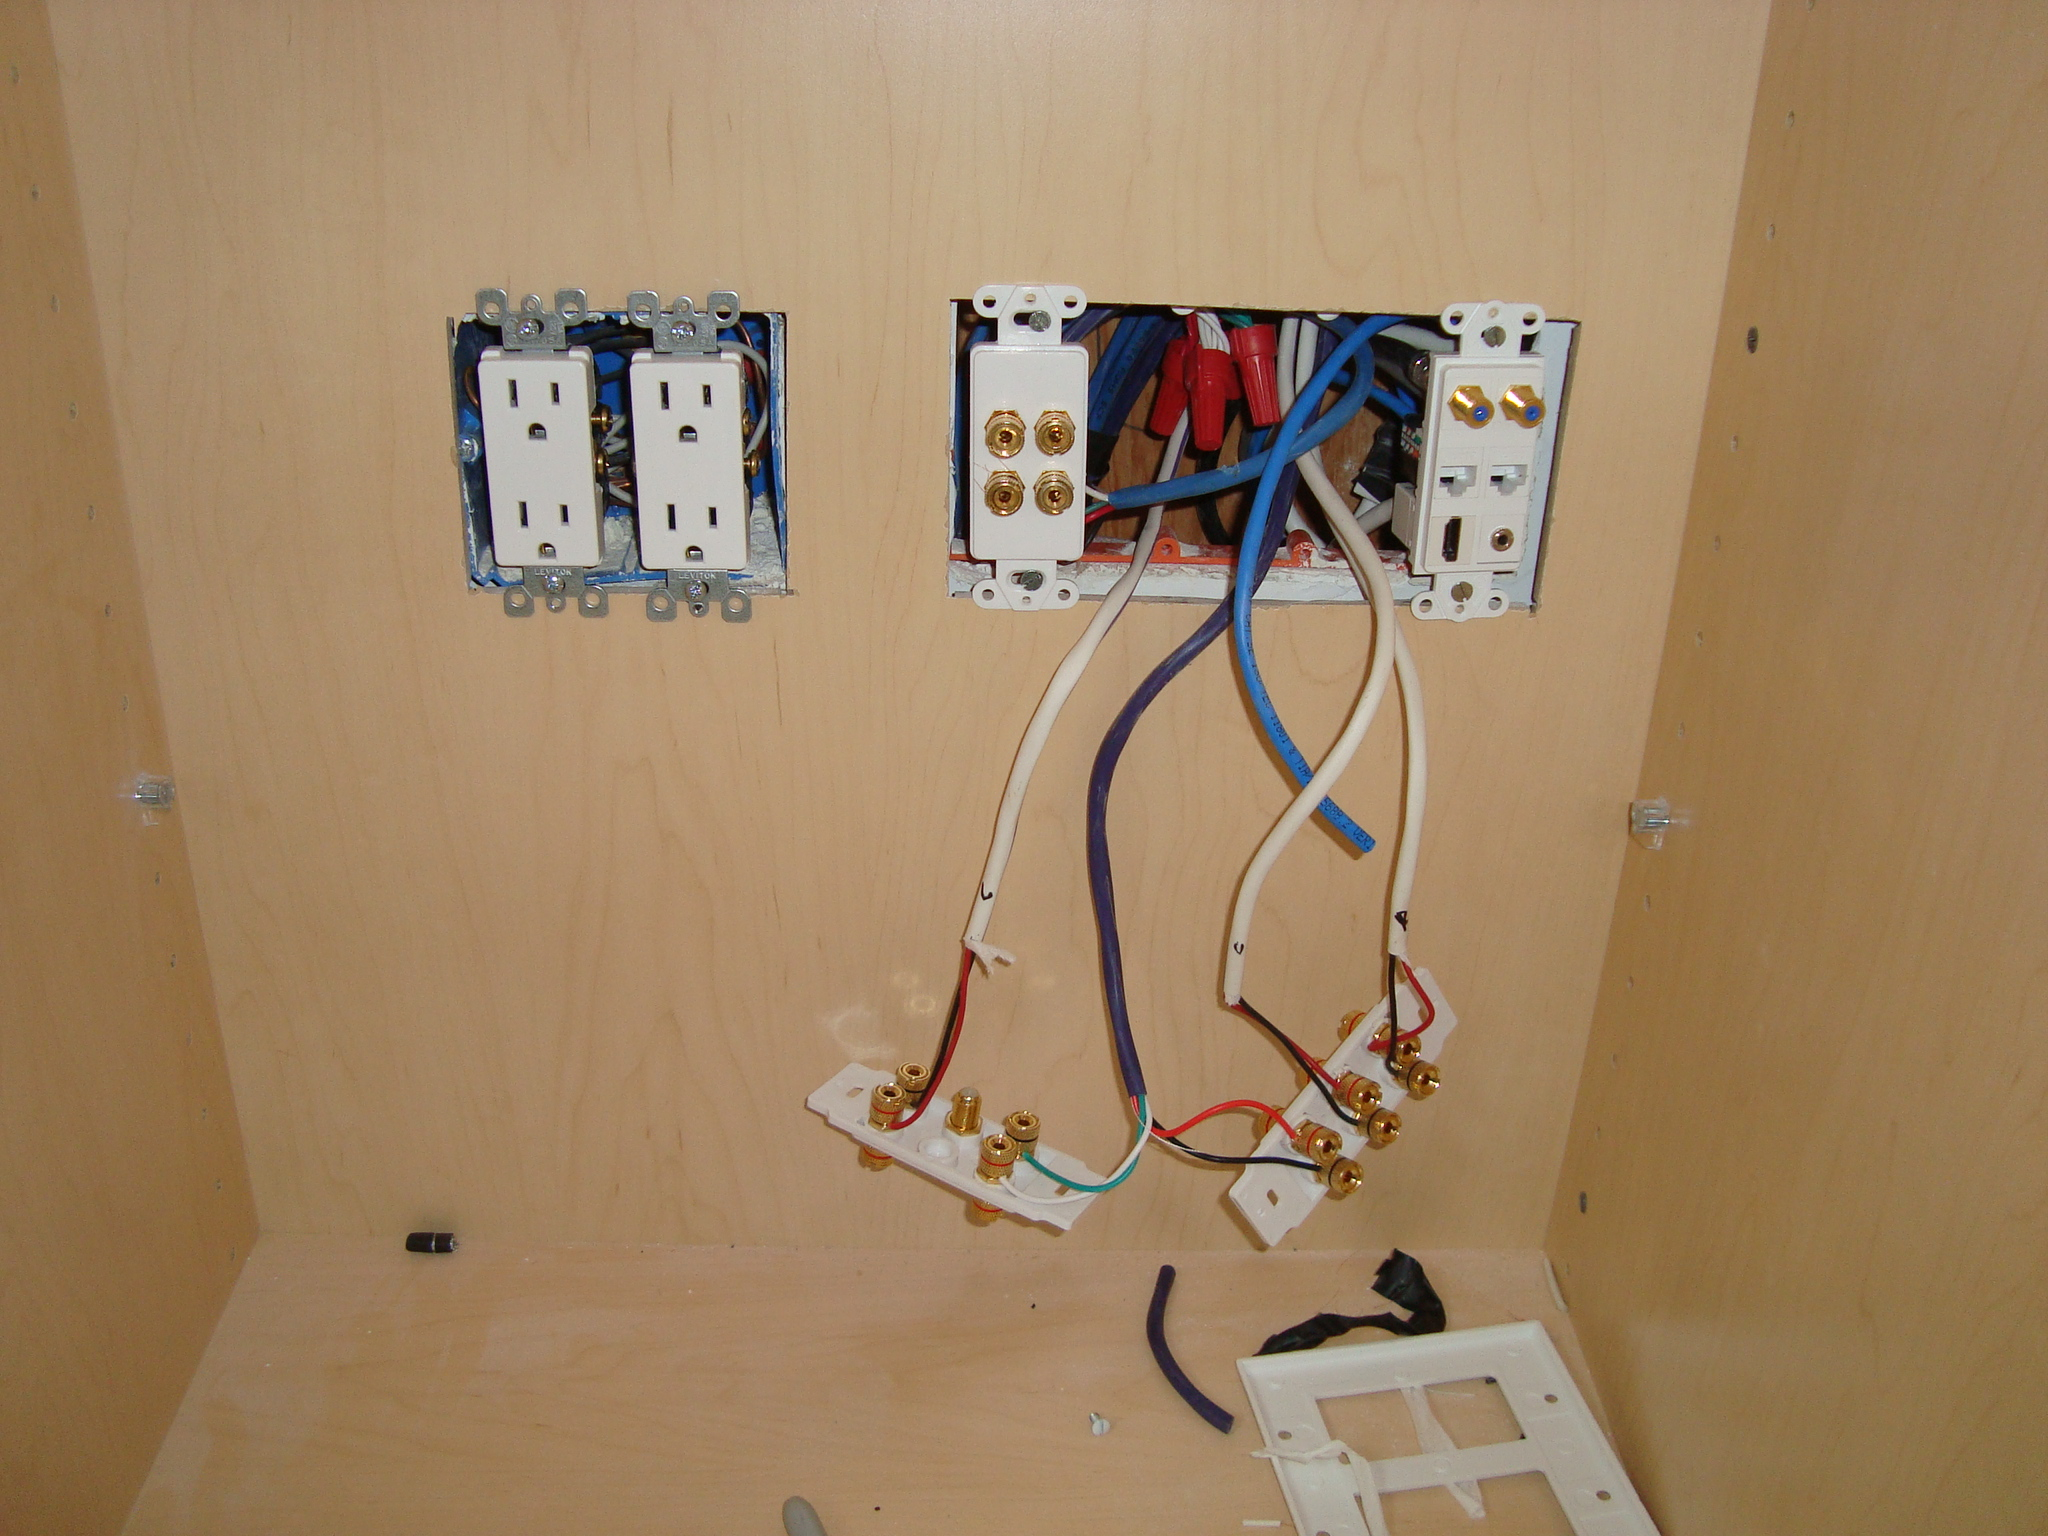 home cinema wiring diagram 3000gt headlight theater wall plate install inside cabinet in san jose